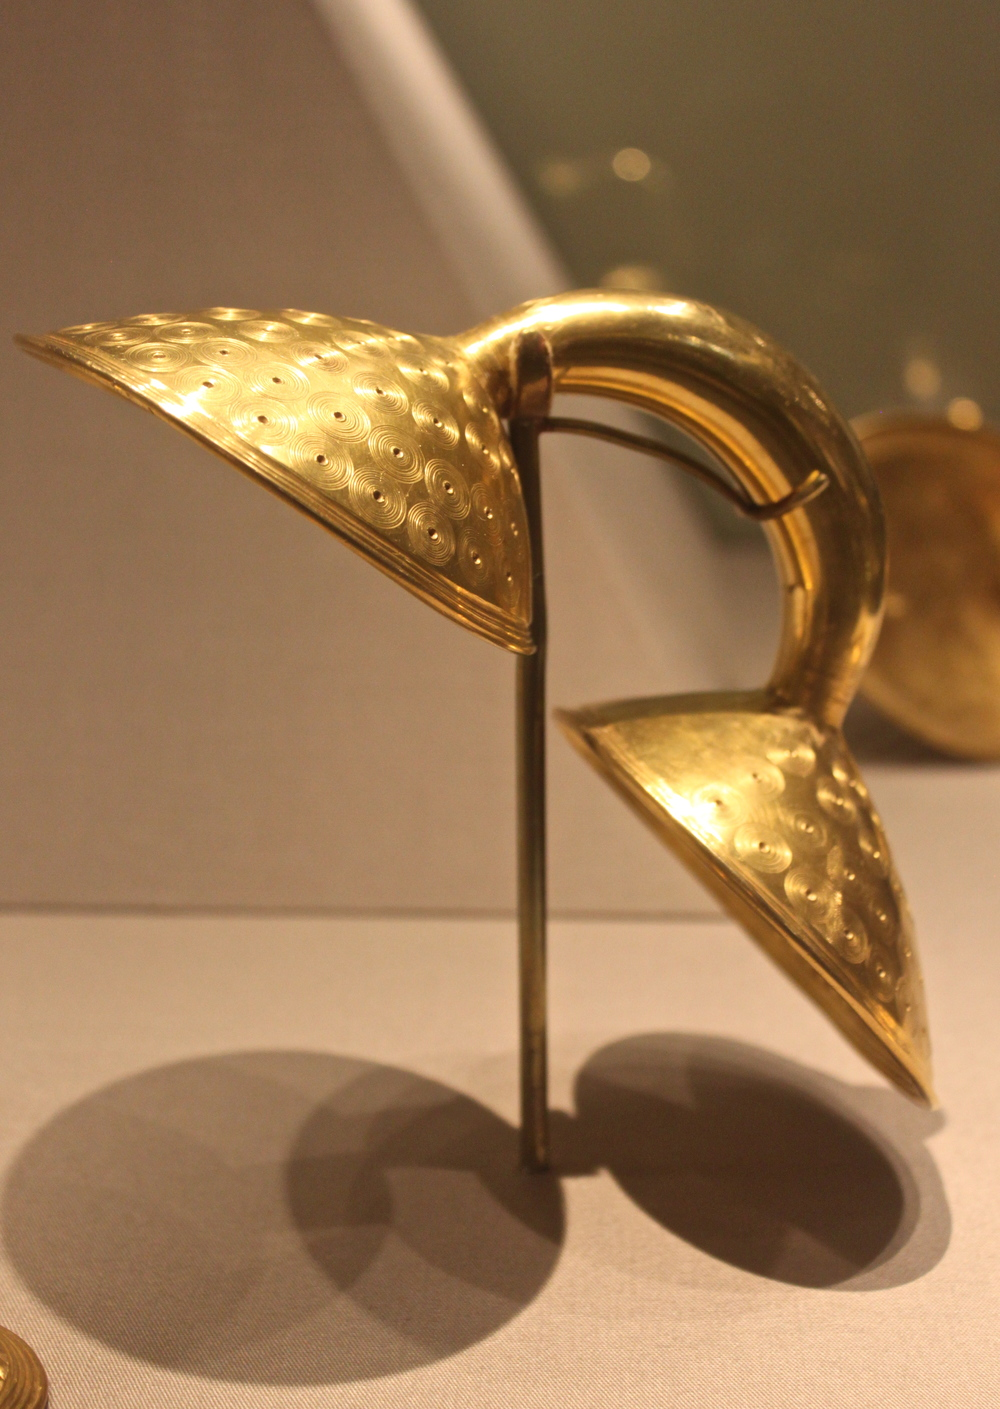 Gold Dress Fastener. Clones. County, Monaghan. Ireland. 800-700 BC.